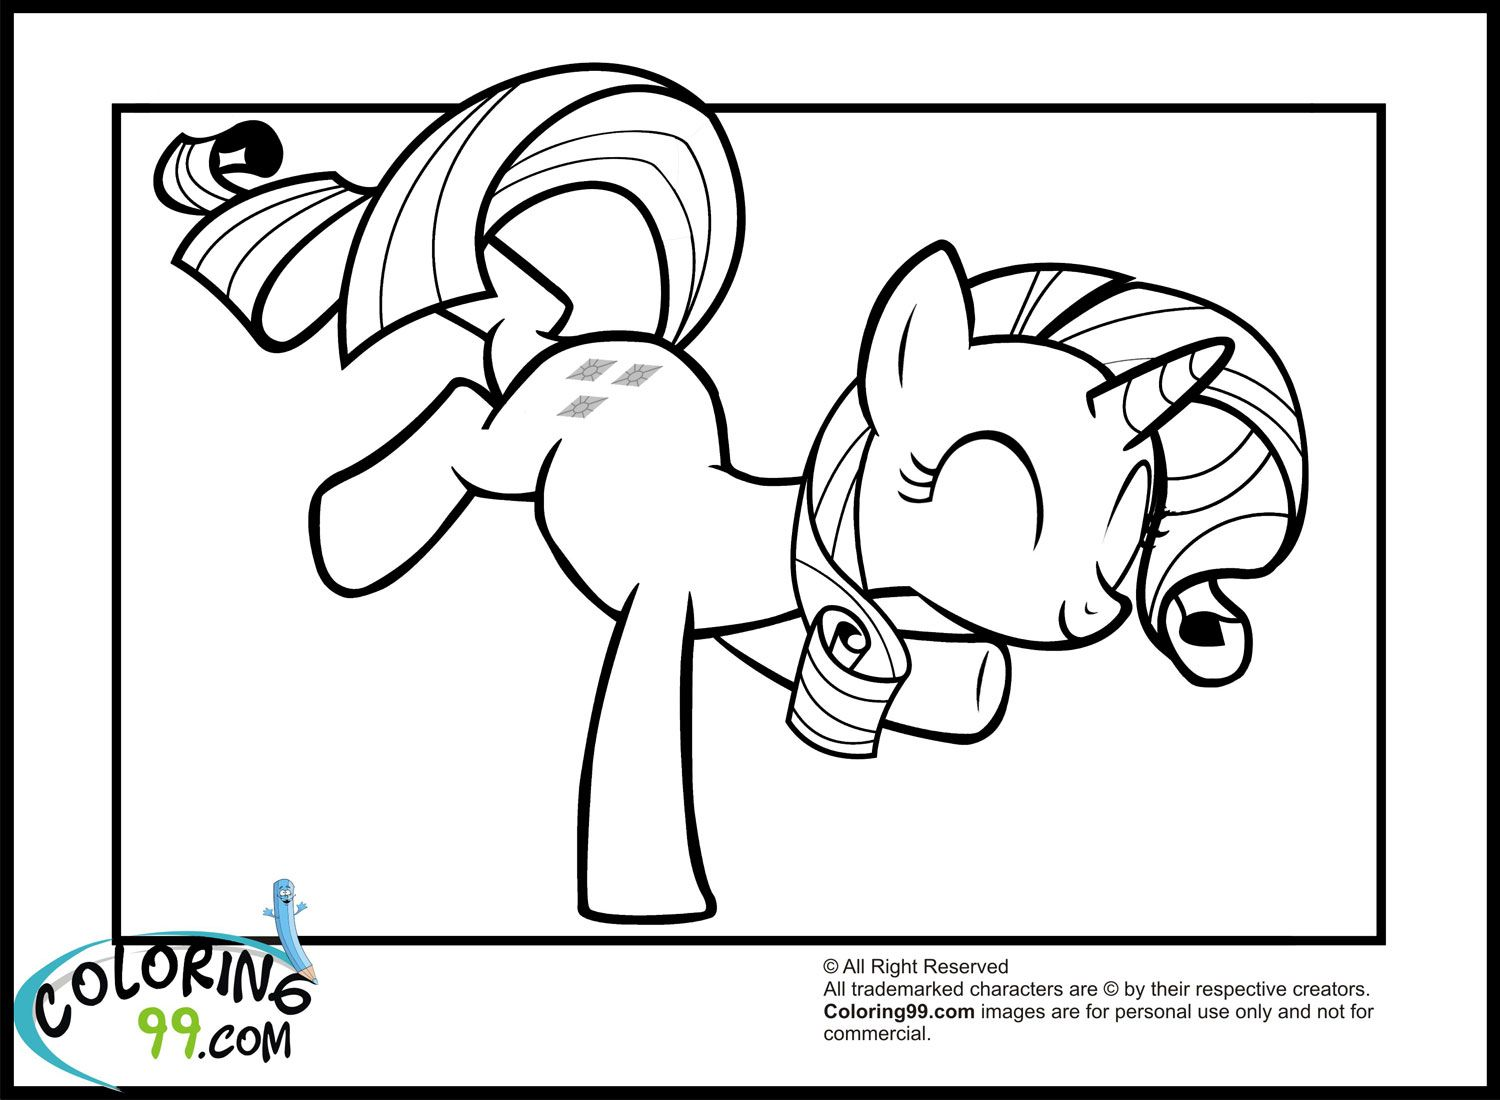 My little pony coloring pages rarity in dress - Jumping Rarity My Little Ponyrarity4 Kidscolouring